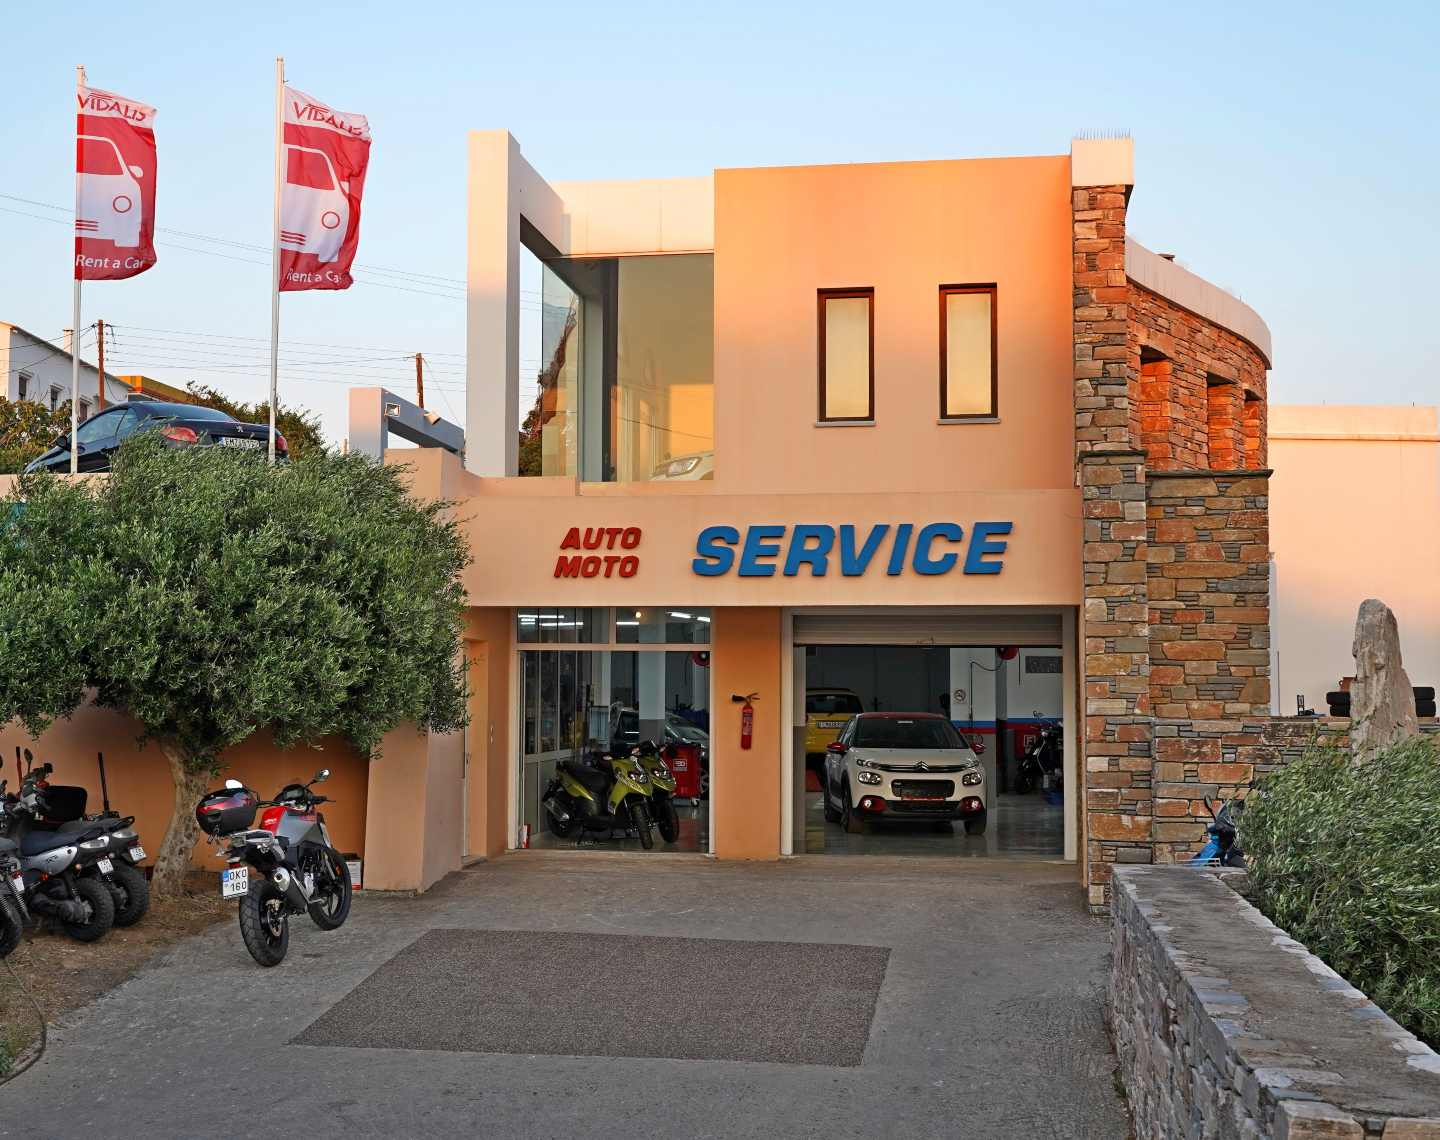 service vidalis rent a car tinos 4